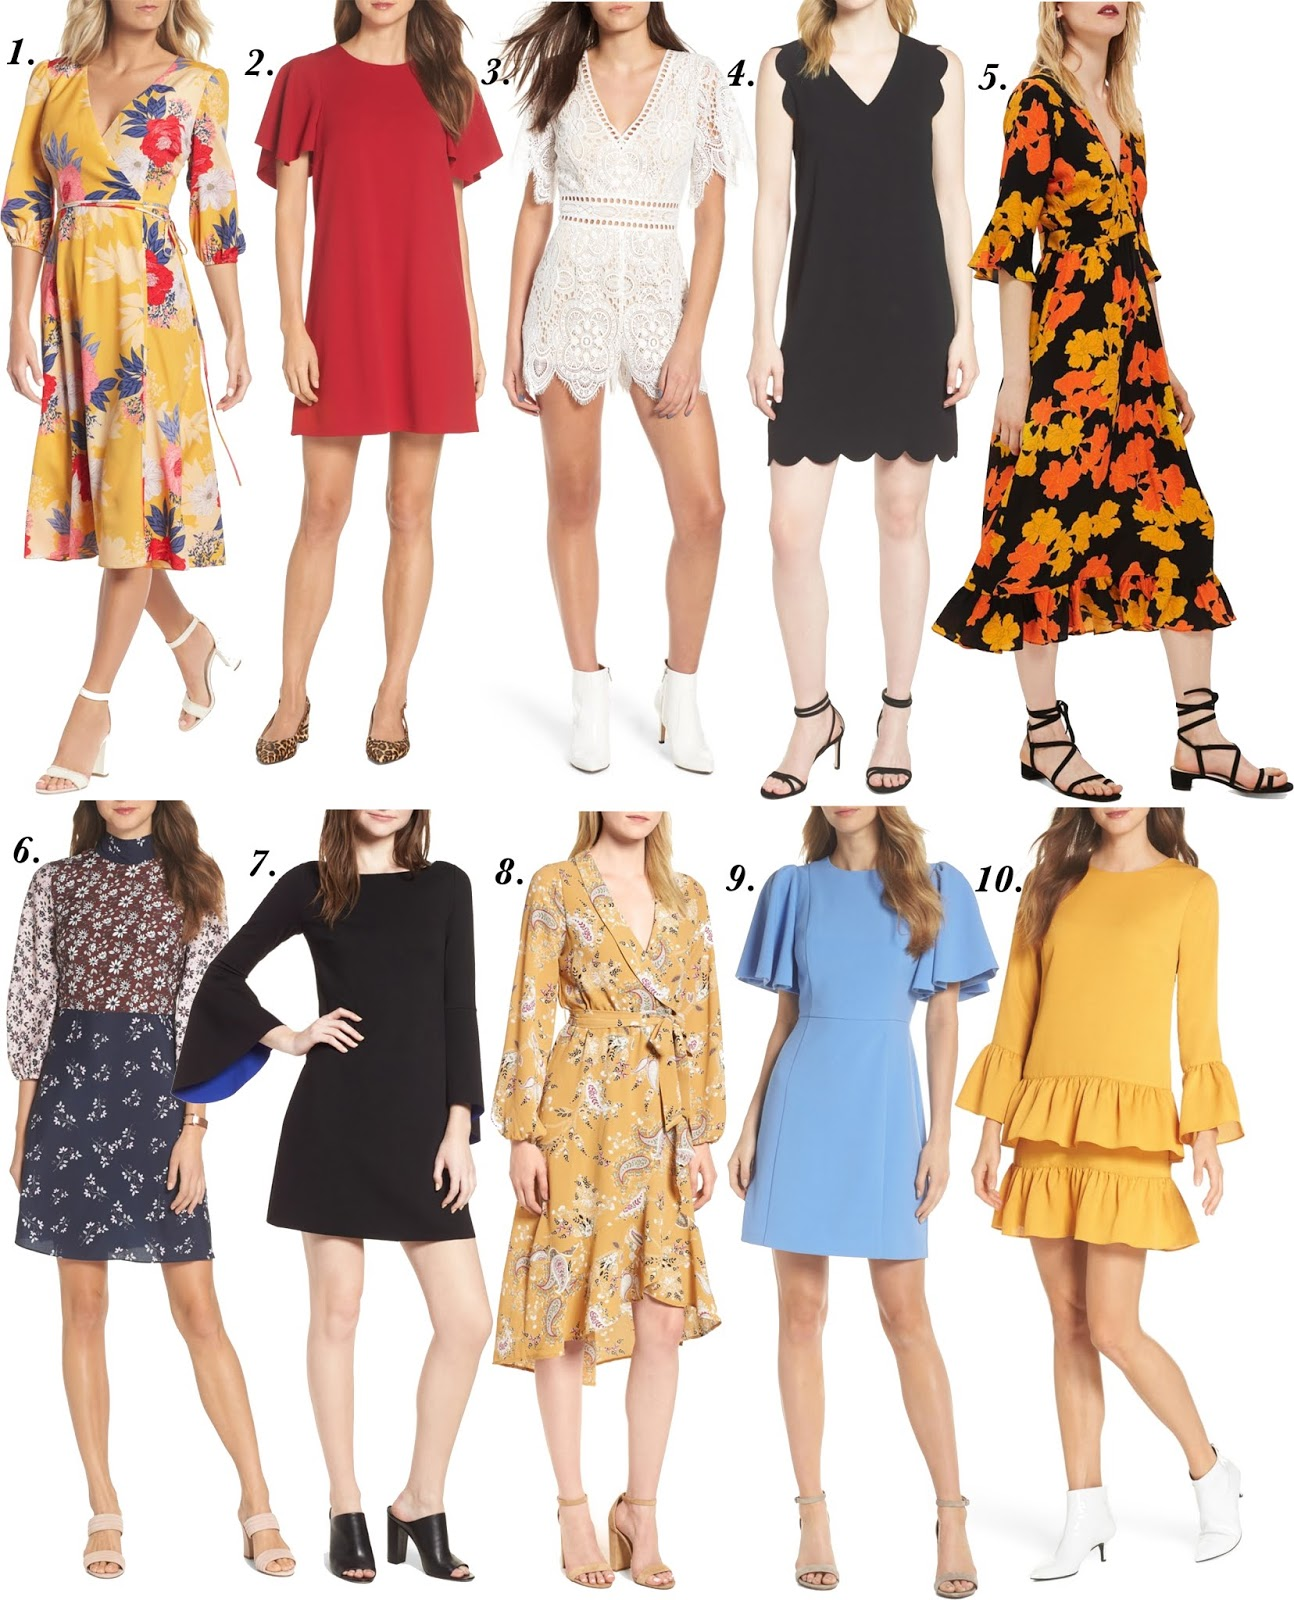 2018 Nordstrom Anniversary Sale: Dresses - Something Delightful Blog